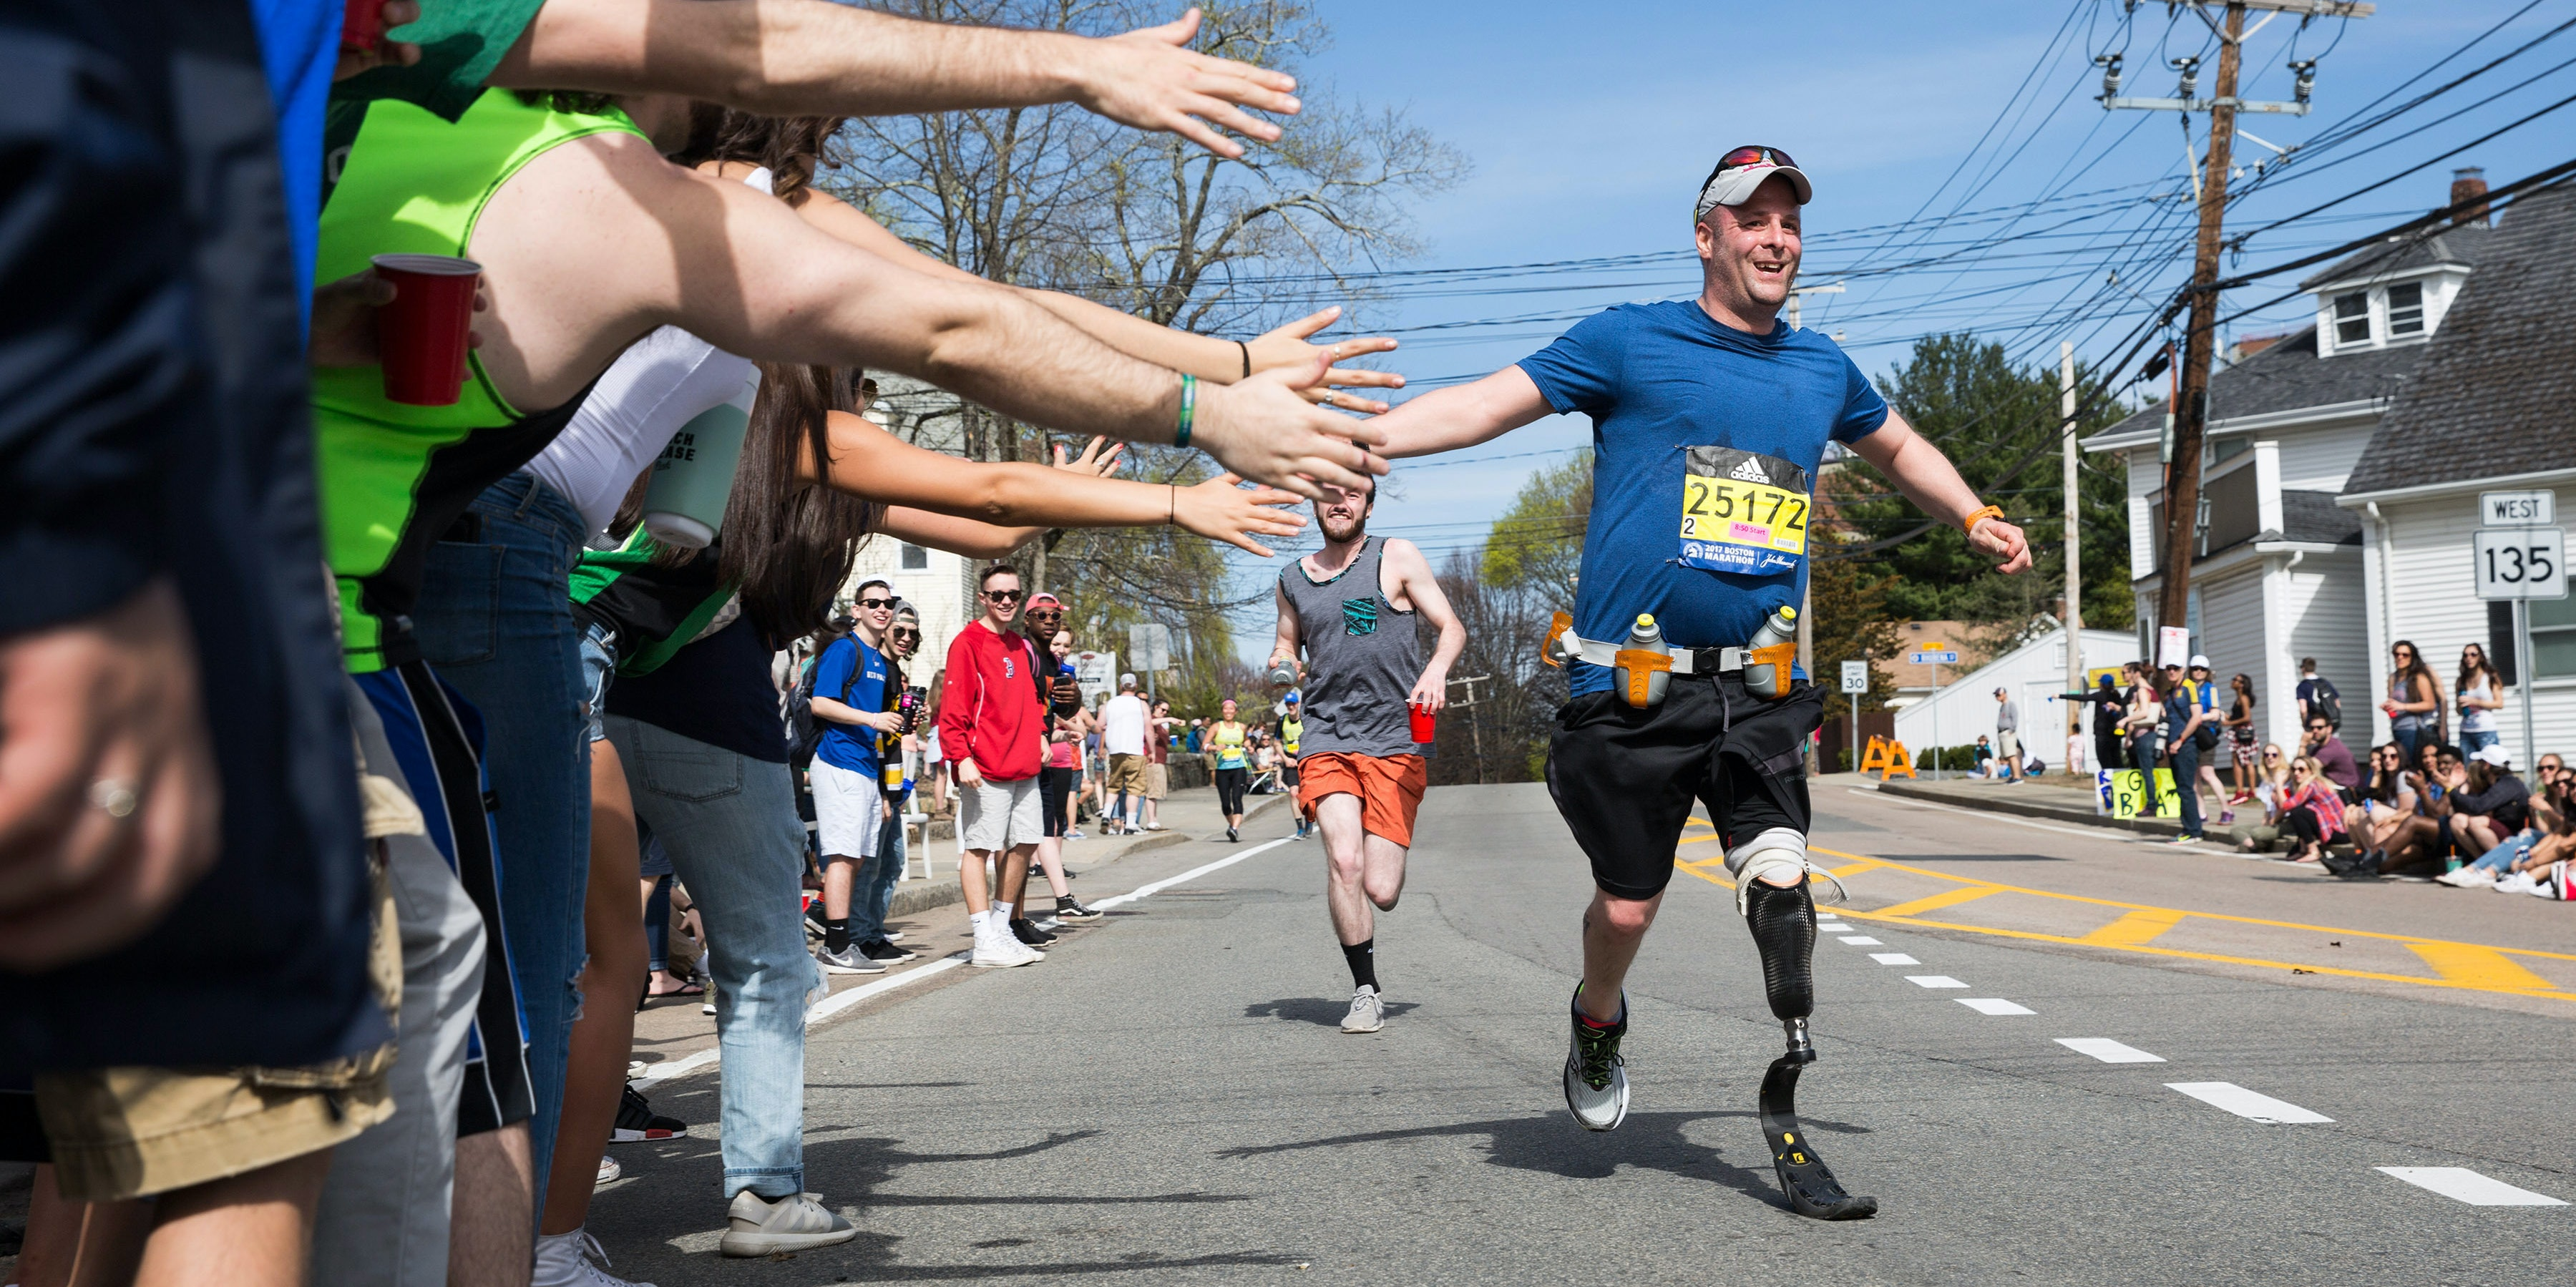 The Coolest Wearable Tech at This Year's Boston Marathon